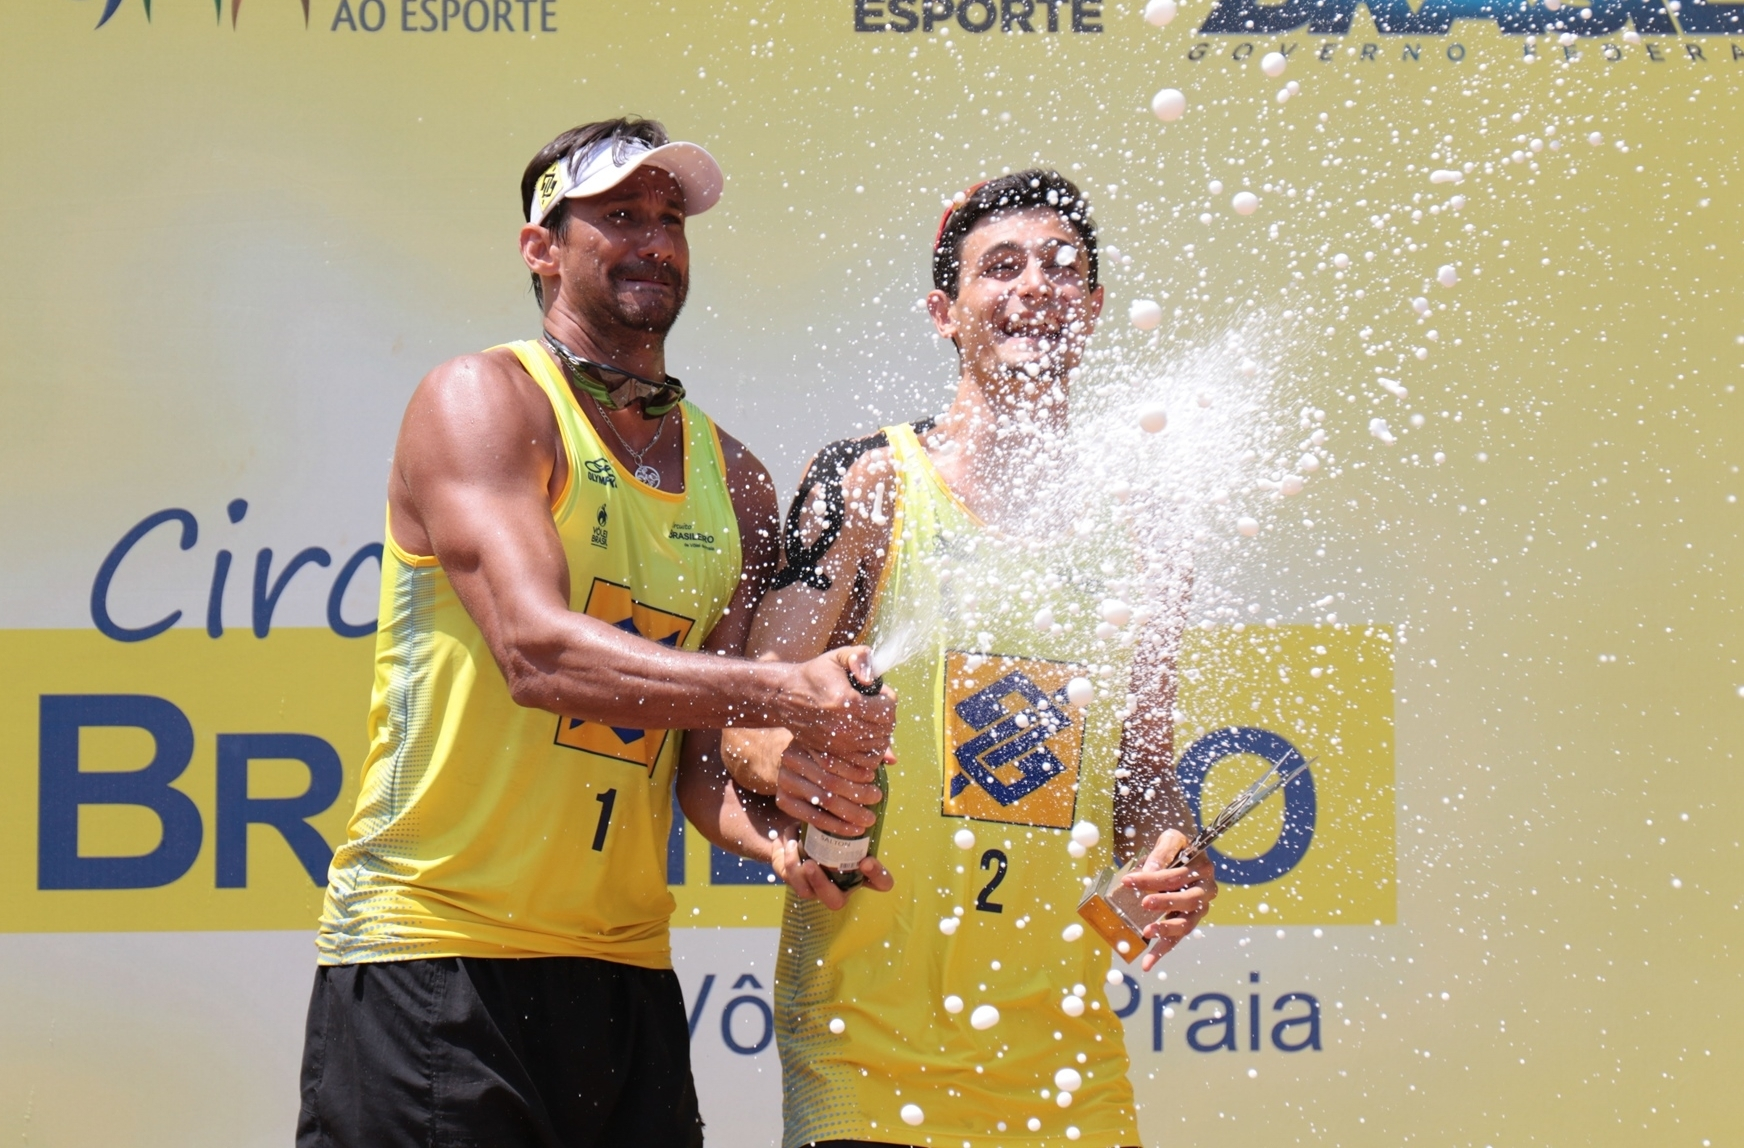 Ricardo and Andre celebrate with champagne! Photocredit: FIVB